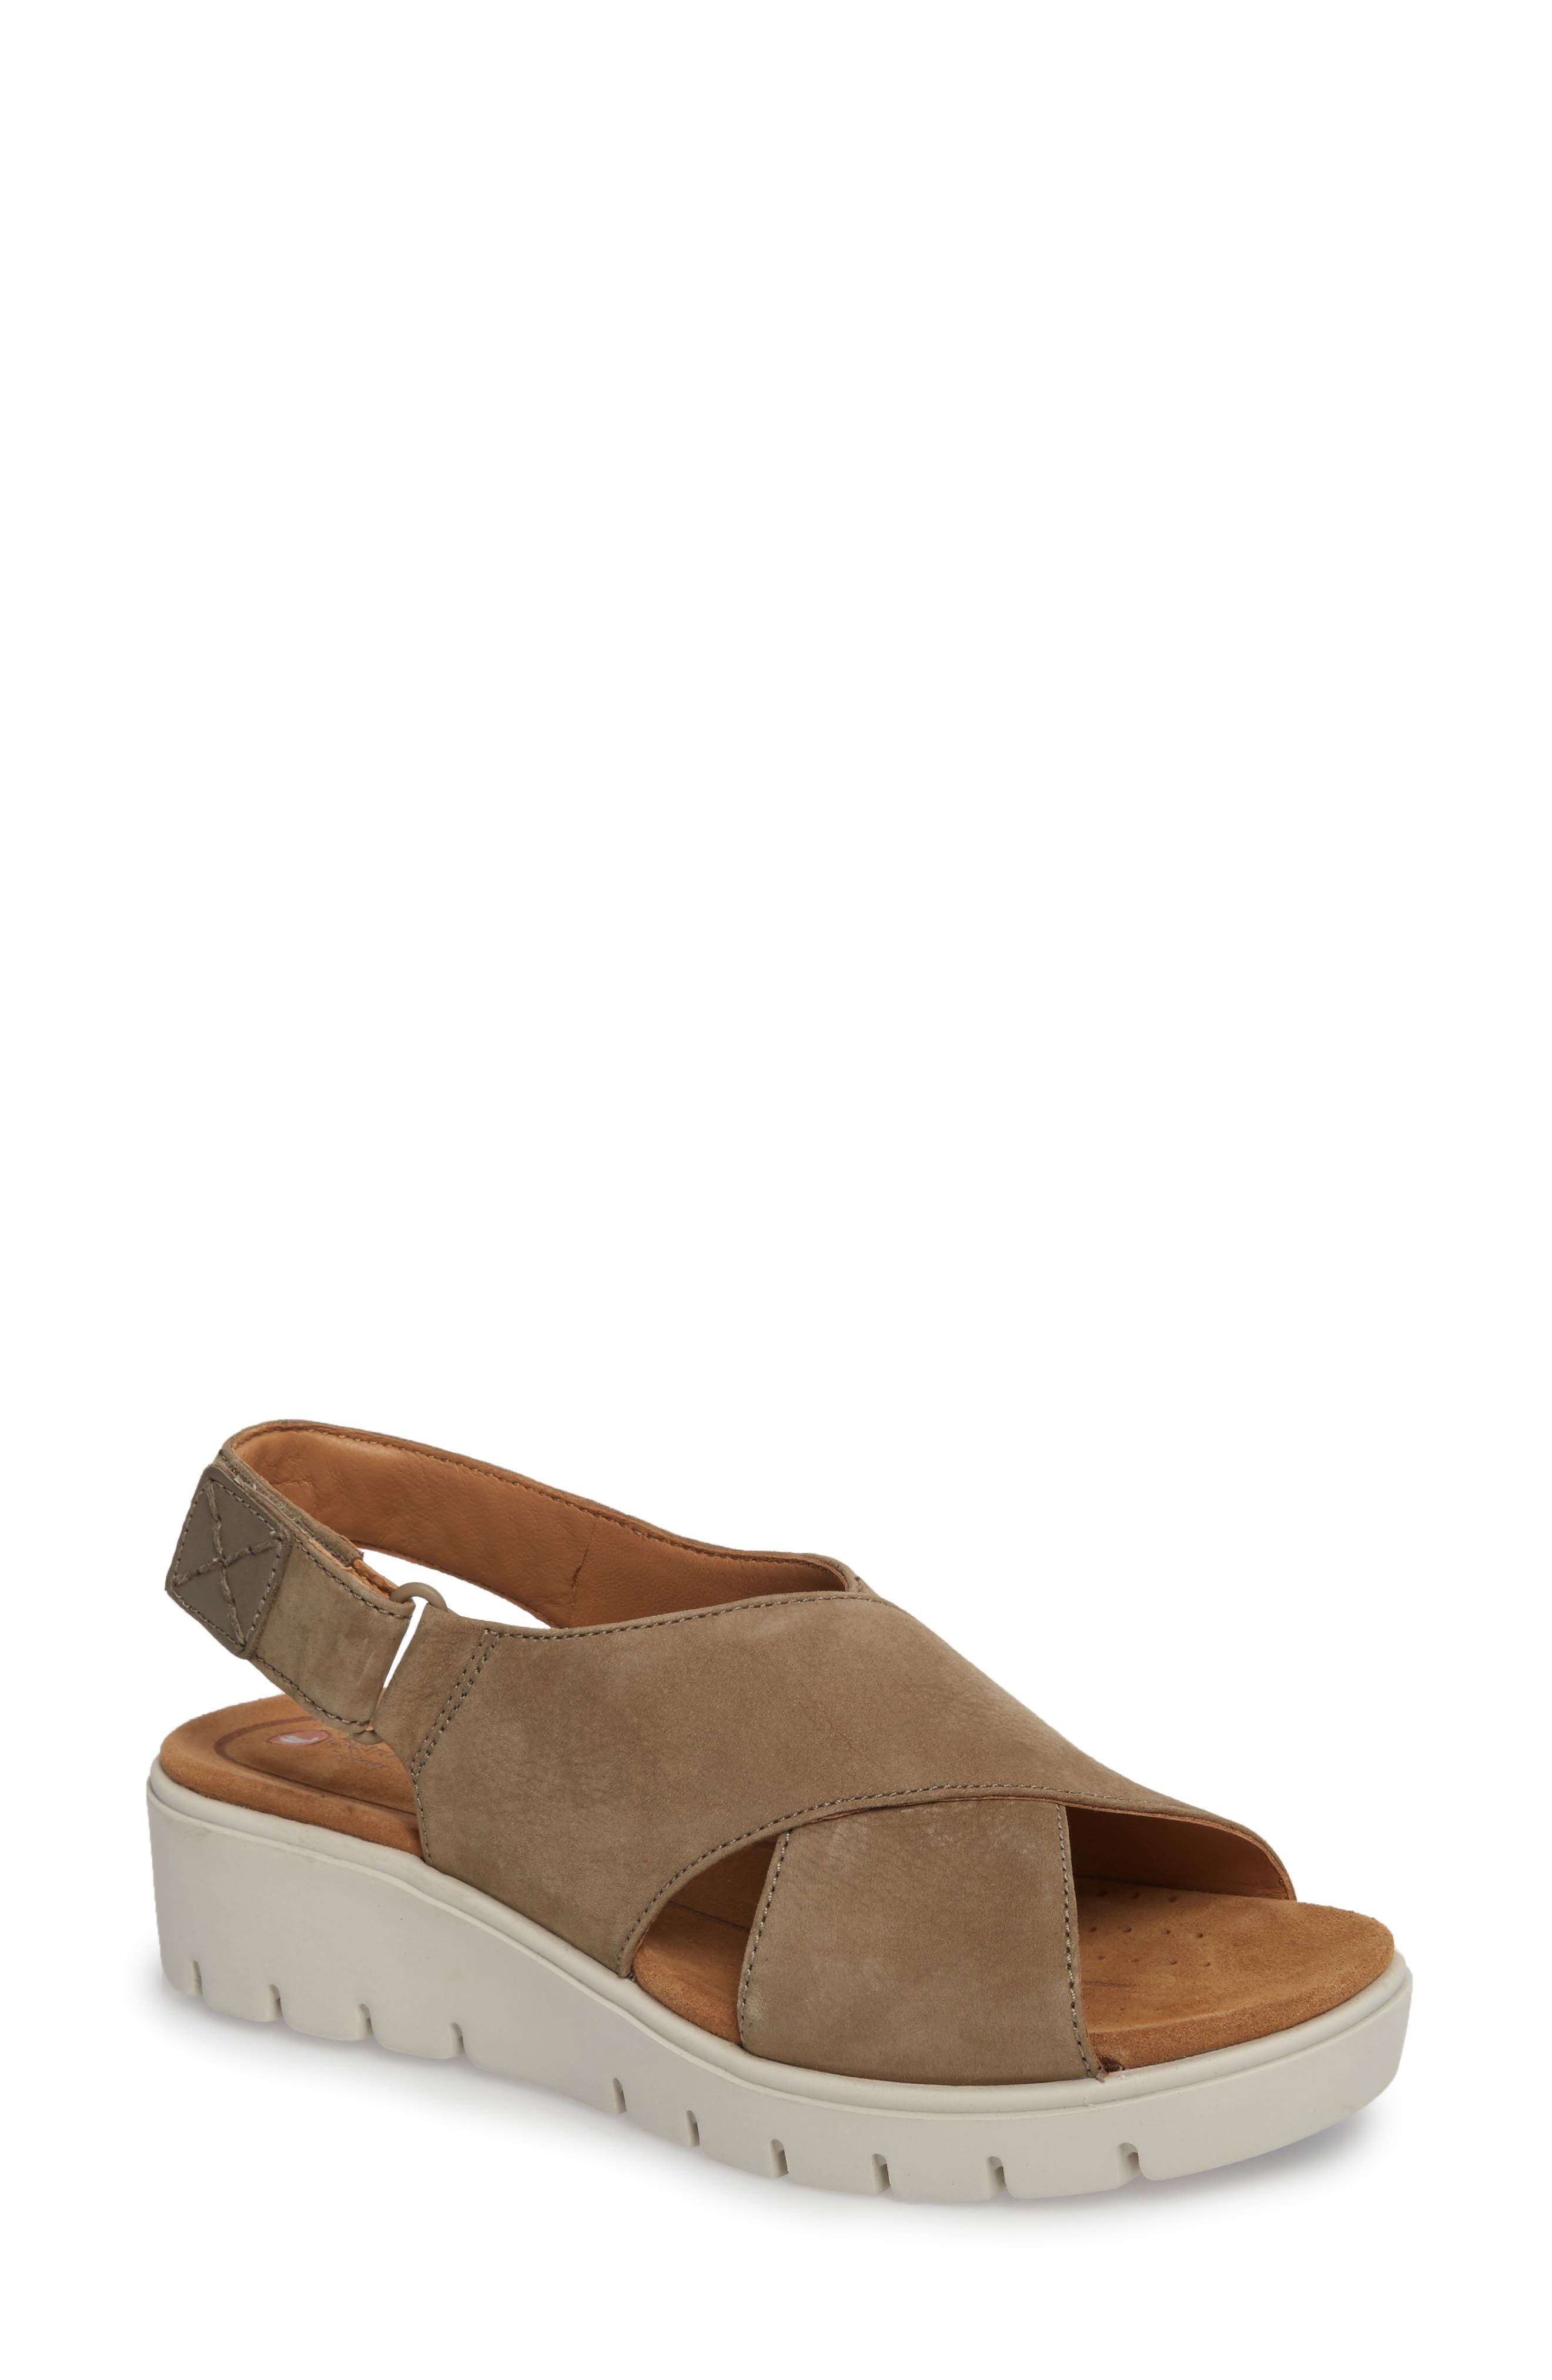 Clarks Unstructured by Clarks Karely Sandal (Women)